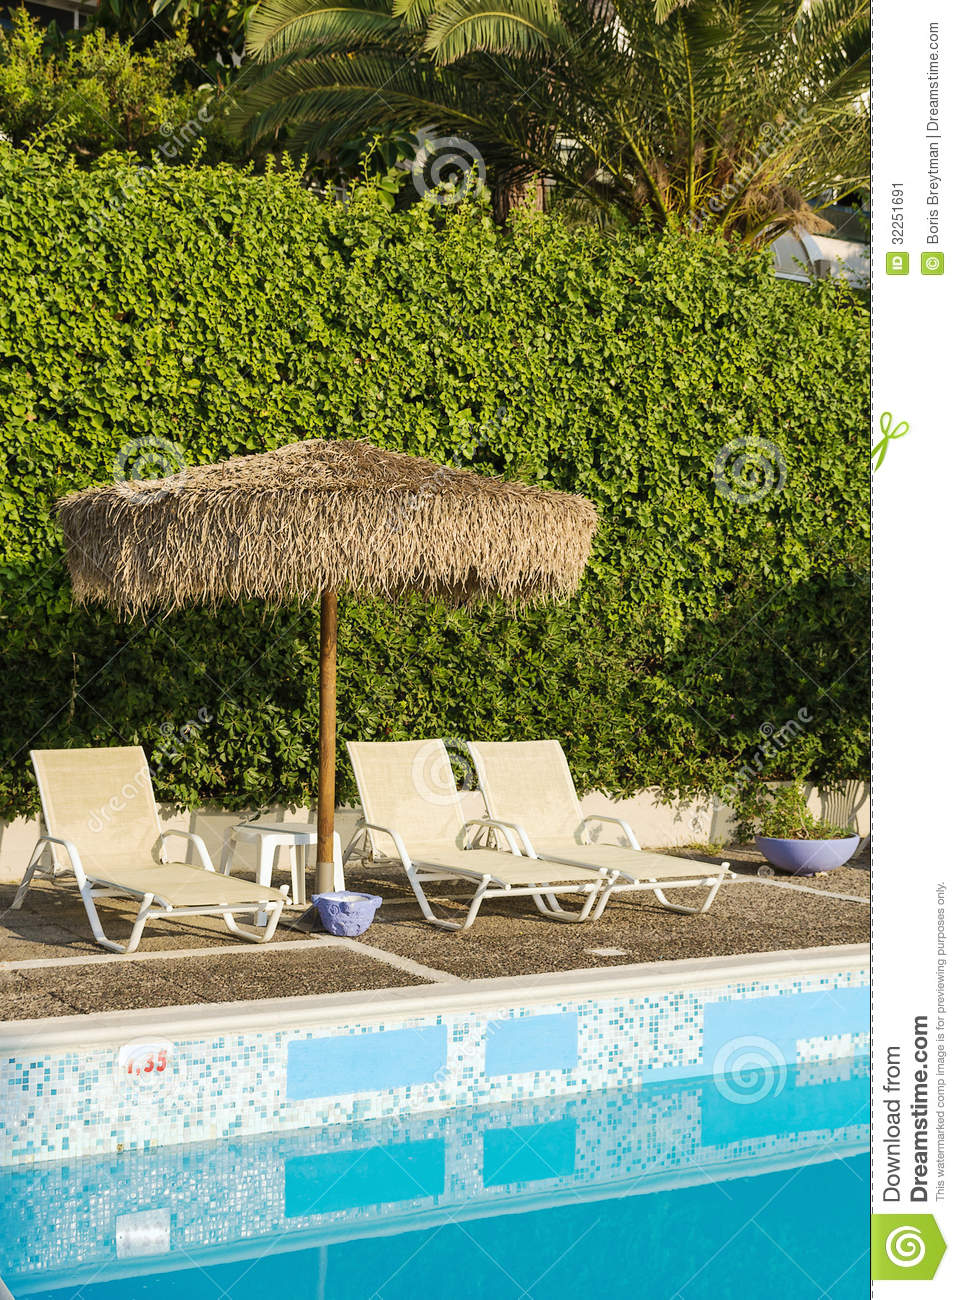 Swimming pool area of hotel stock image image 32251691 for Swimming pool area